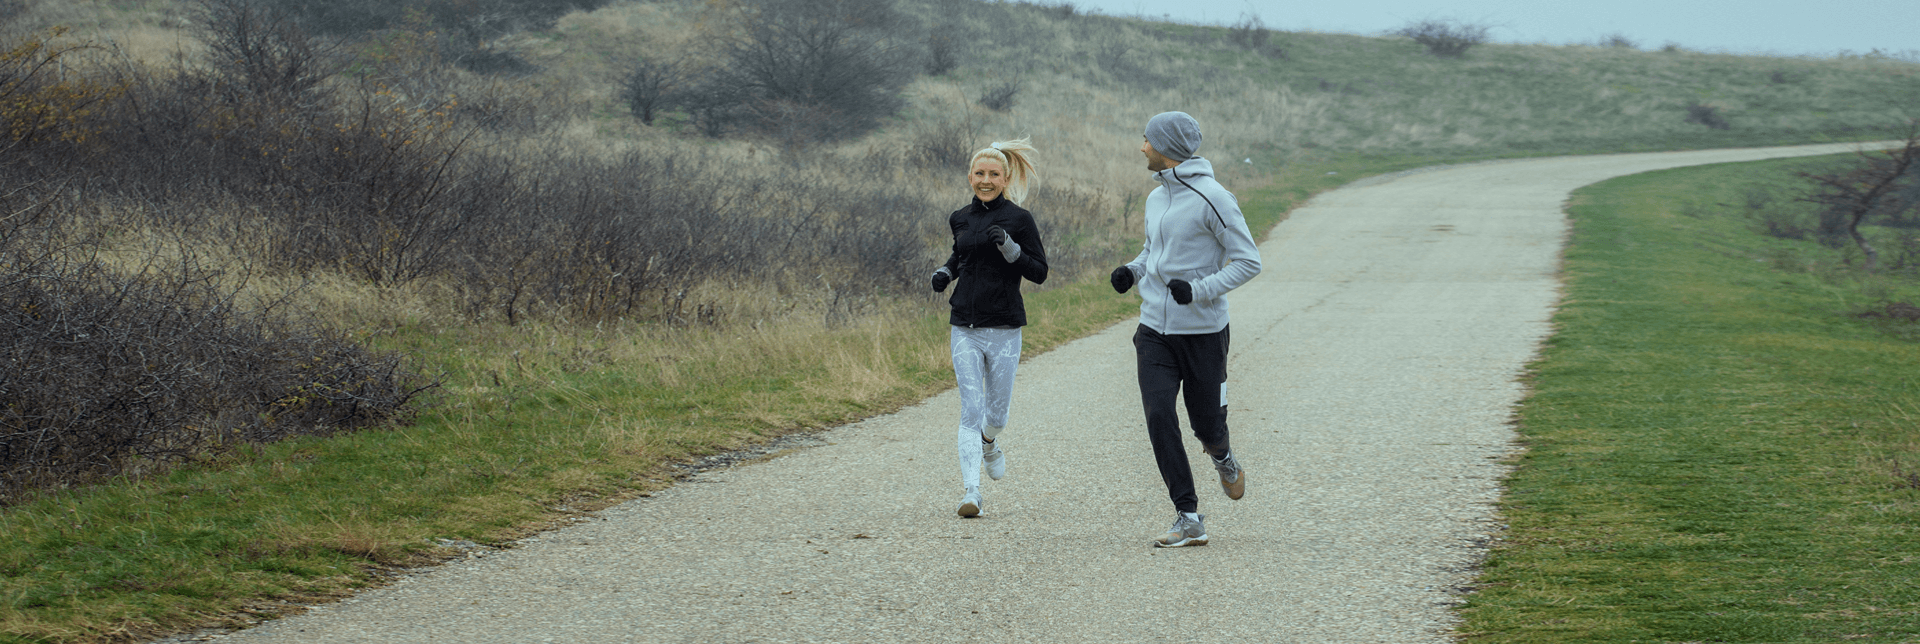 Couple running outdoors during winter